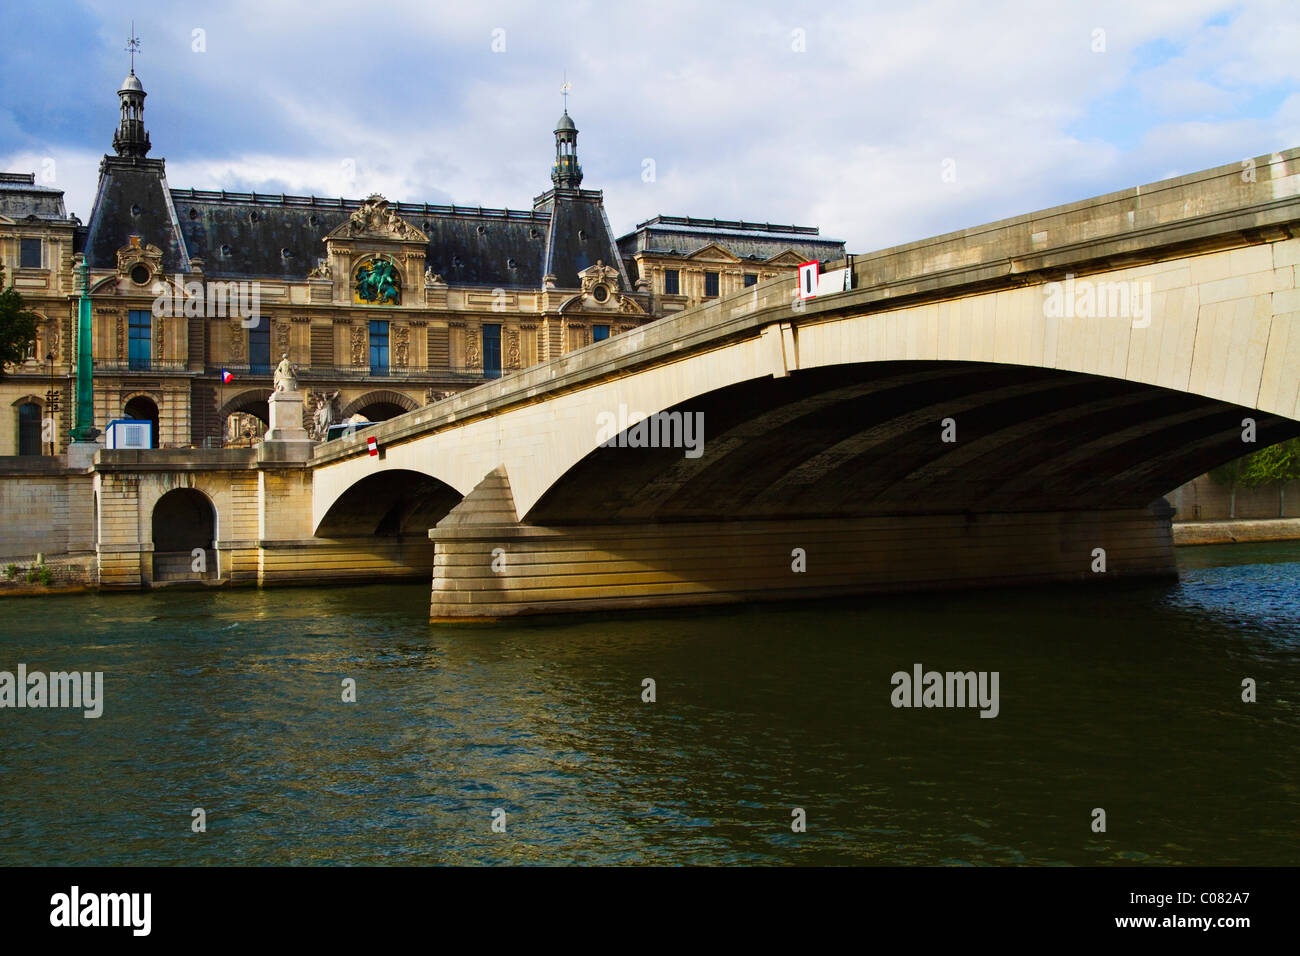 Arch bridge across the river with a palace, Luxembourg Palace, Seine River, Paris, France - Stock Image